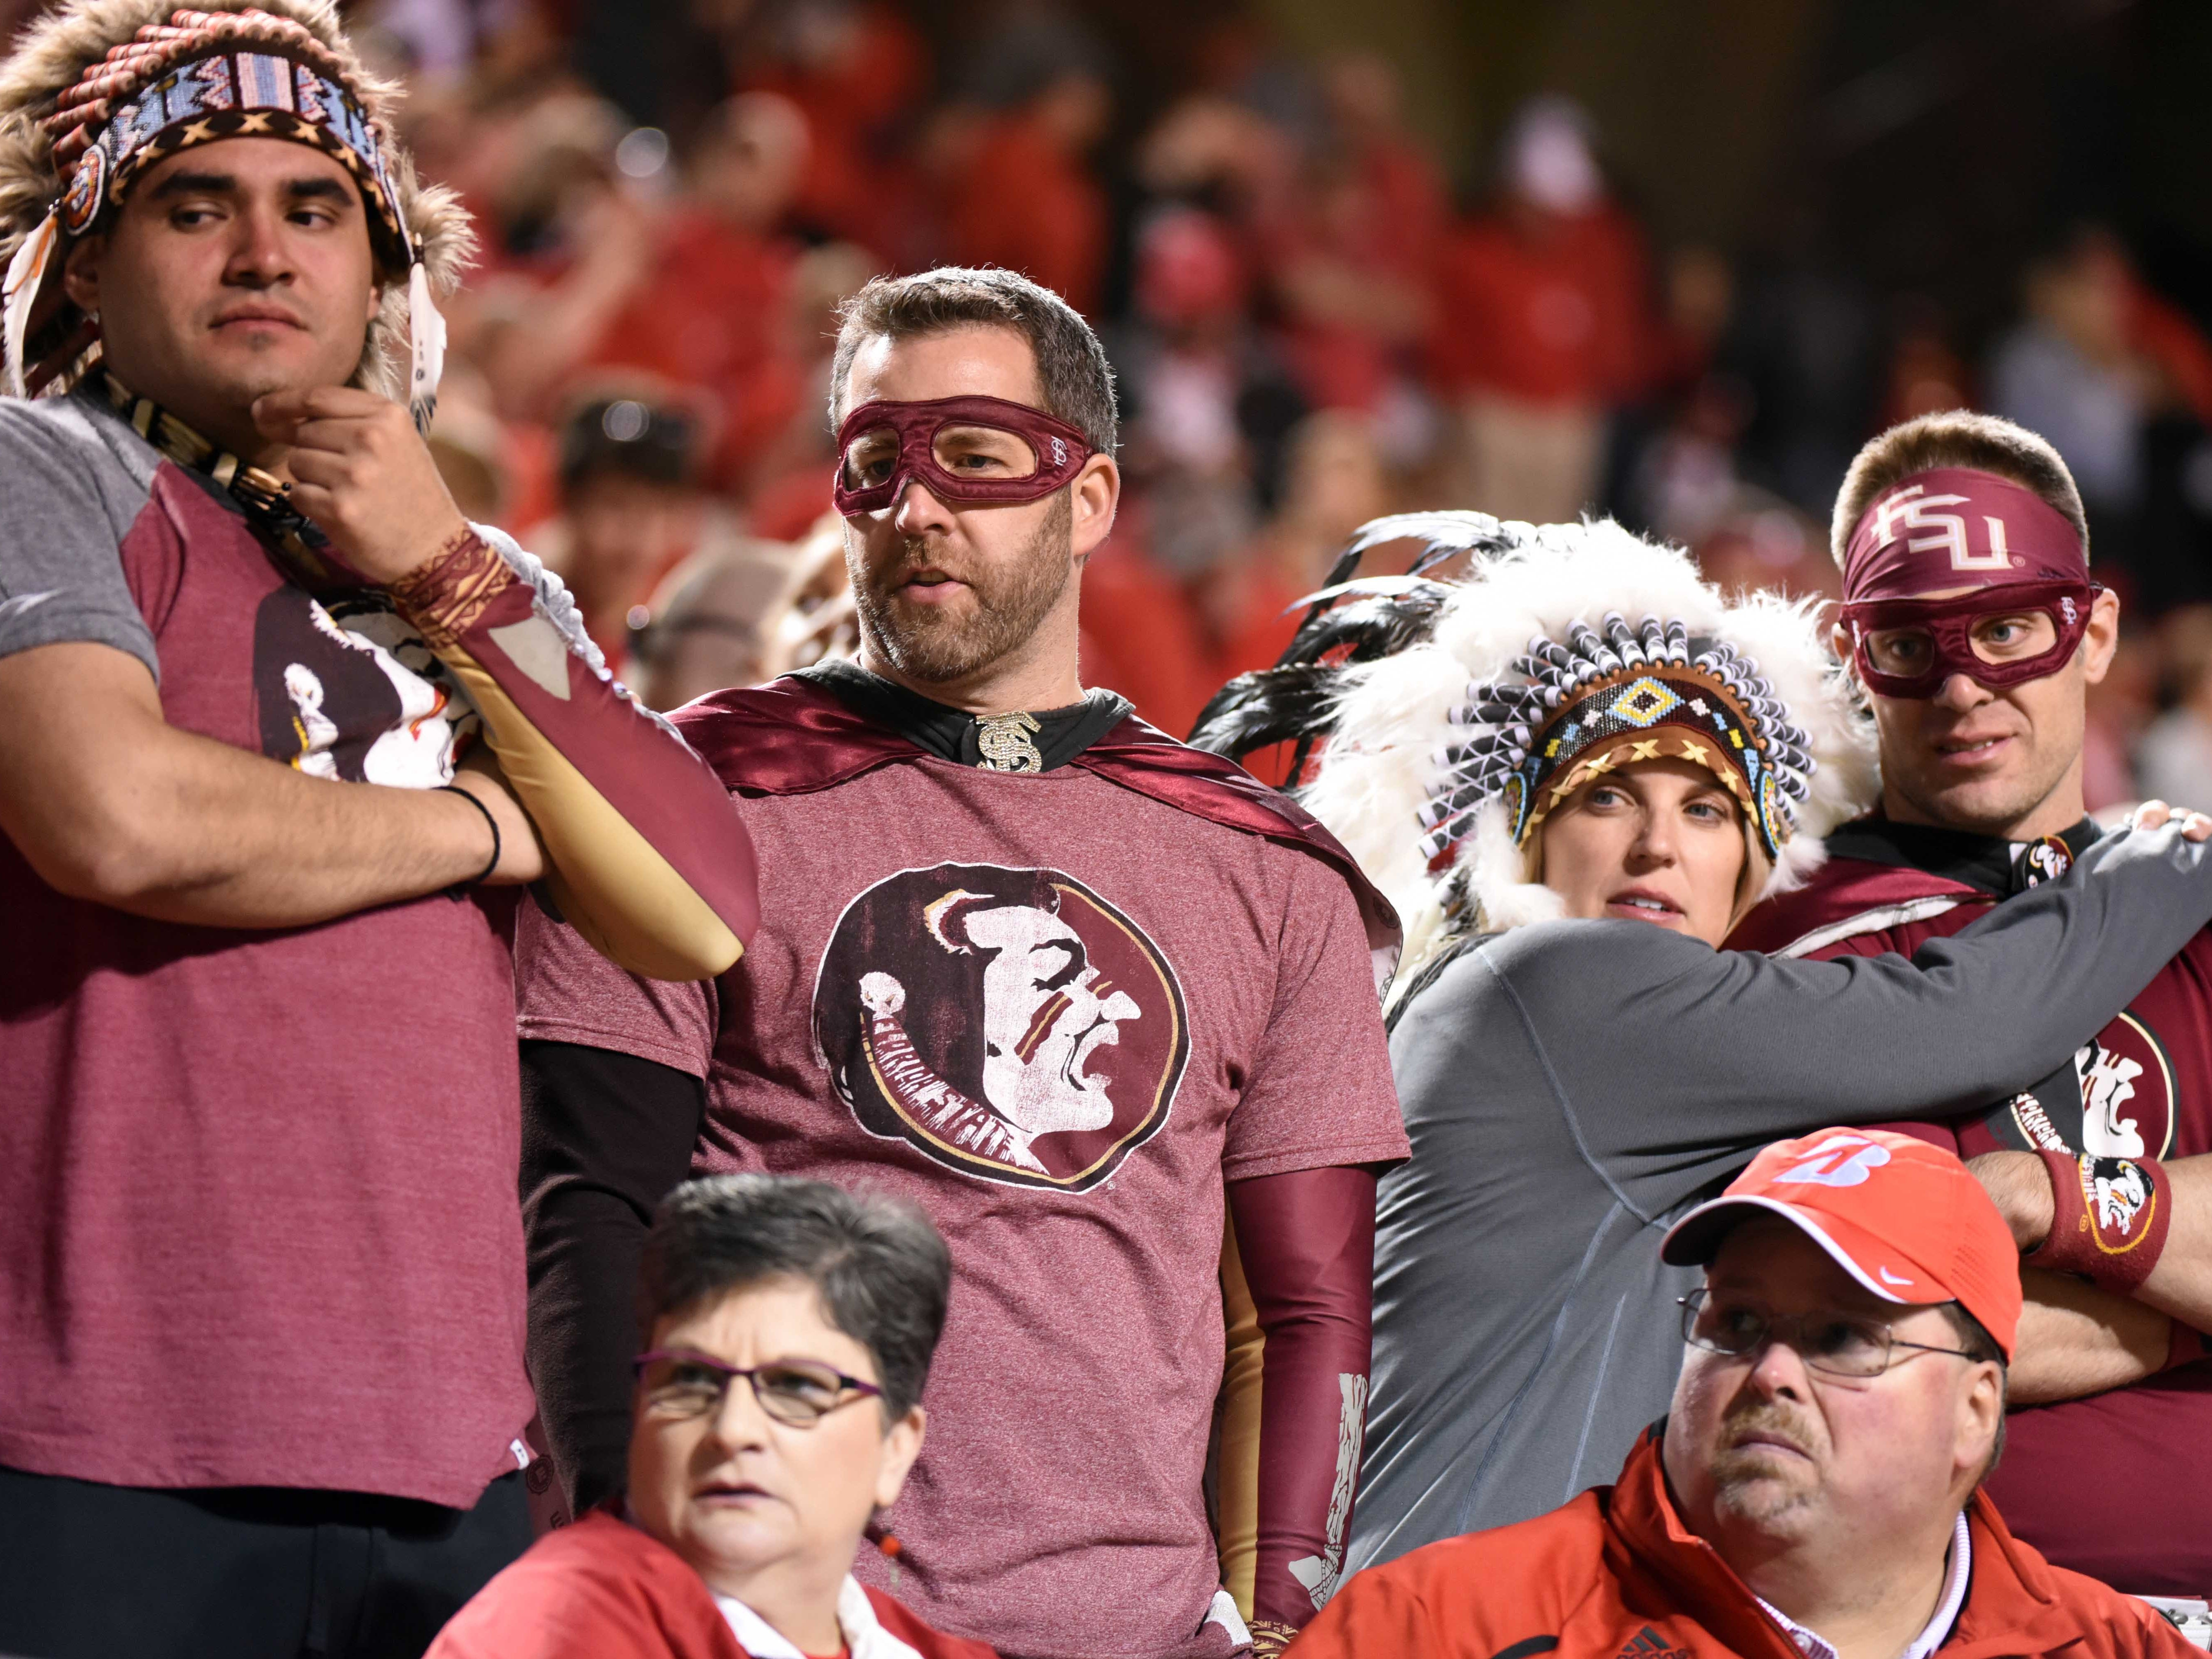 Nov 3, 2018; Raleigh, NC, USA; Florida State Seminoles fans look on during the second half against the North Carolina State Wolfpack at Carter-Finley Stadium.  The Wolfpack won 47-28.  Mandatory Credit: Rob Kinnan-USA TODAY Sports